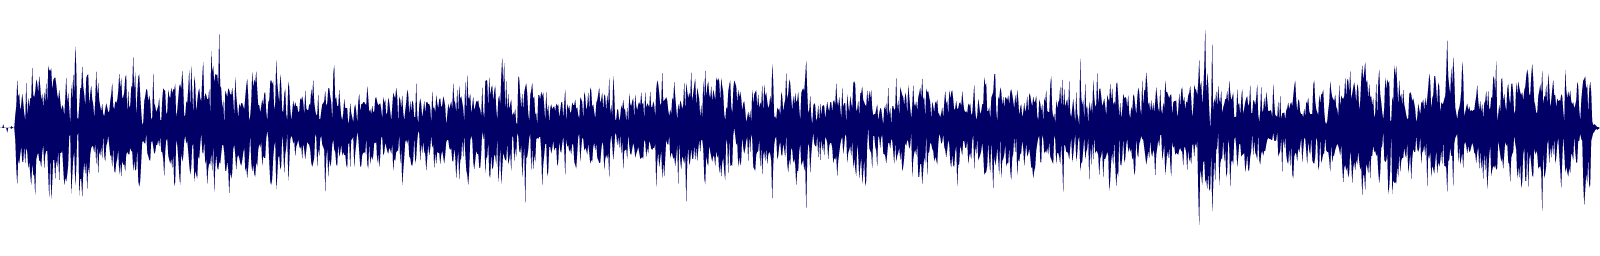 waveform of track #146277